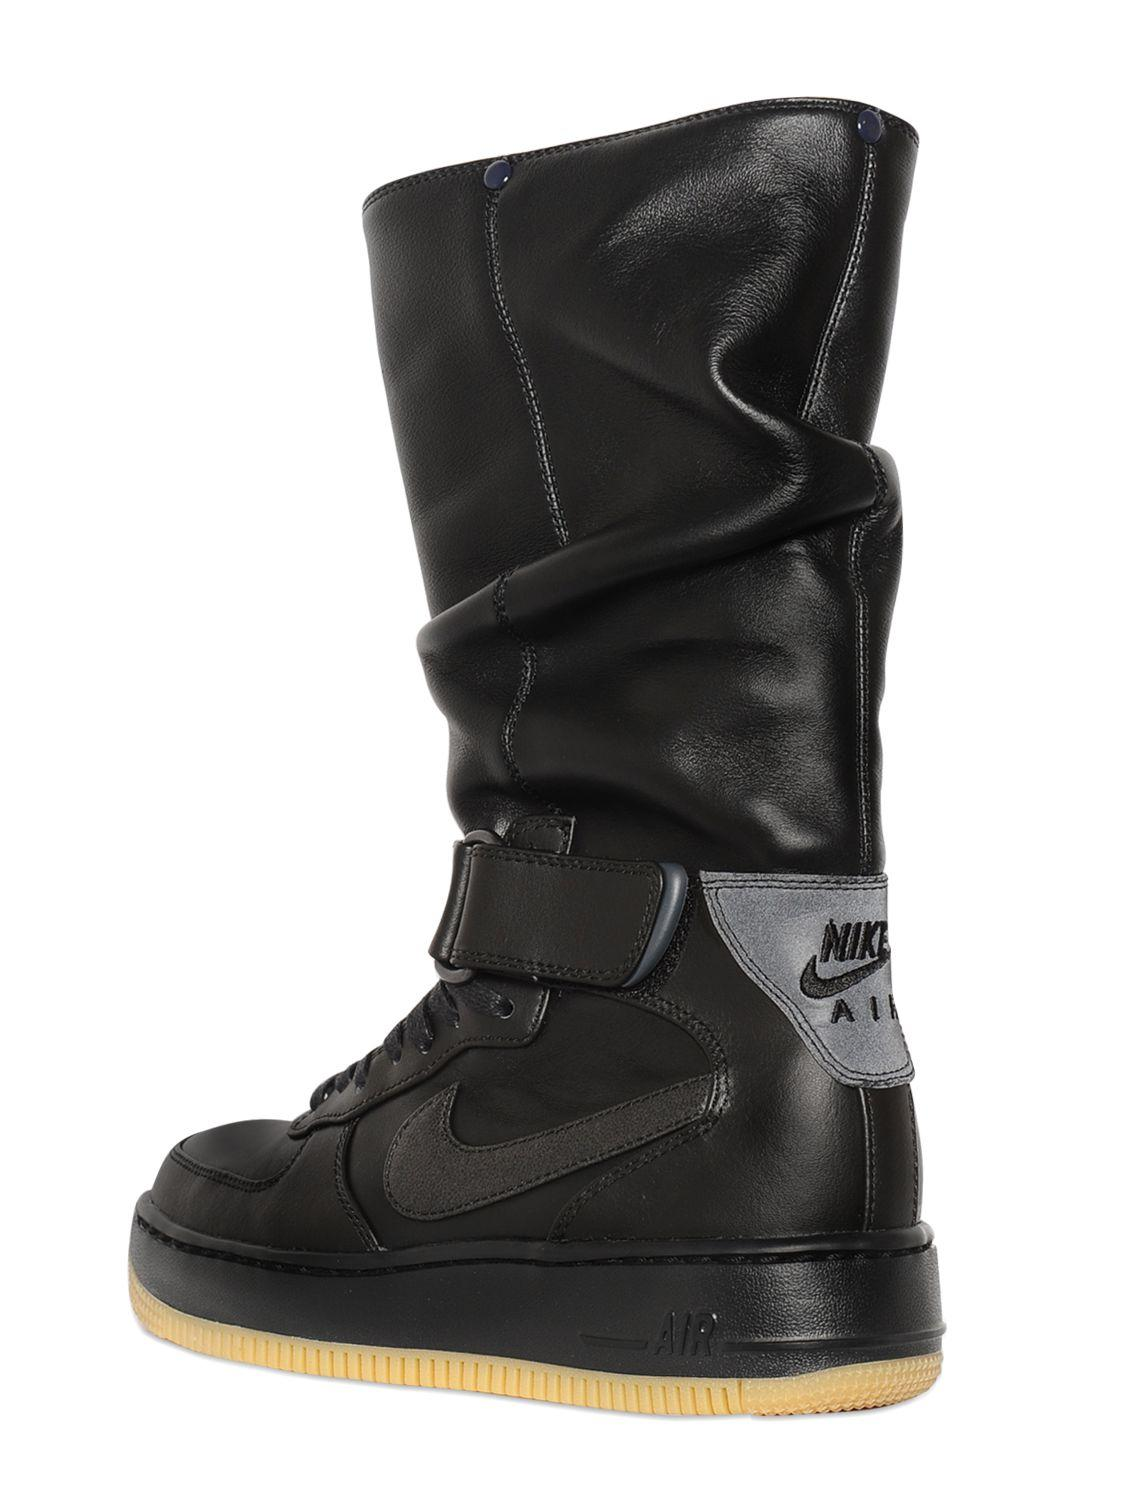 Nike Upstep Warrior Leather Sneaker Boots In Black For Men